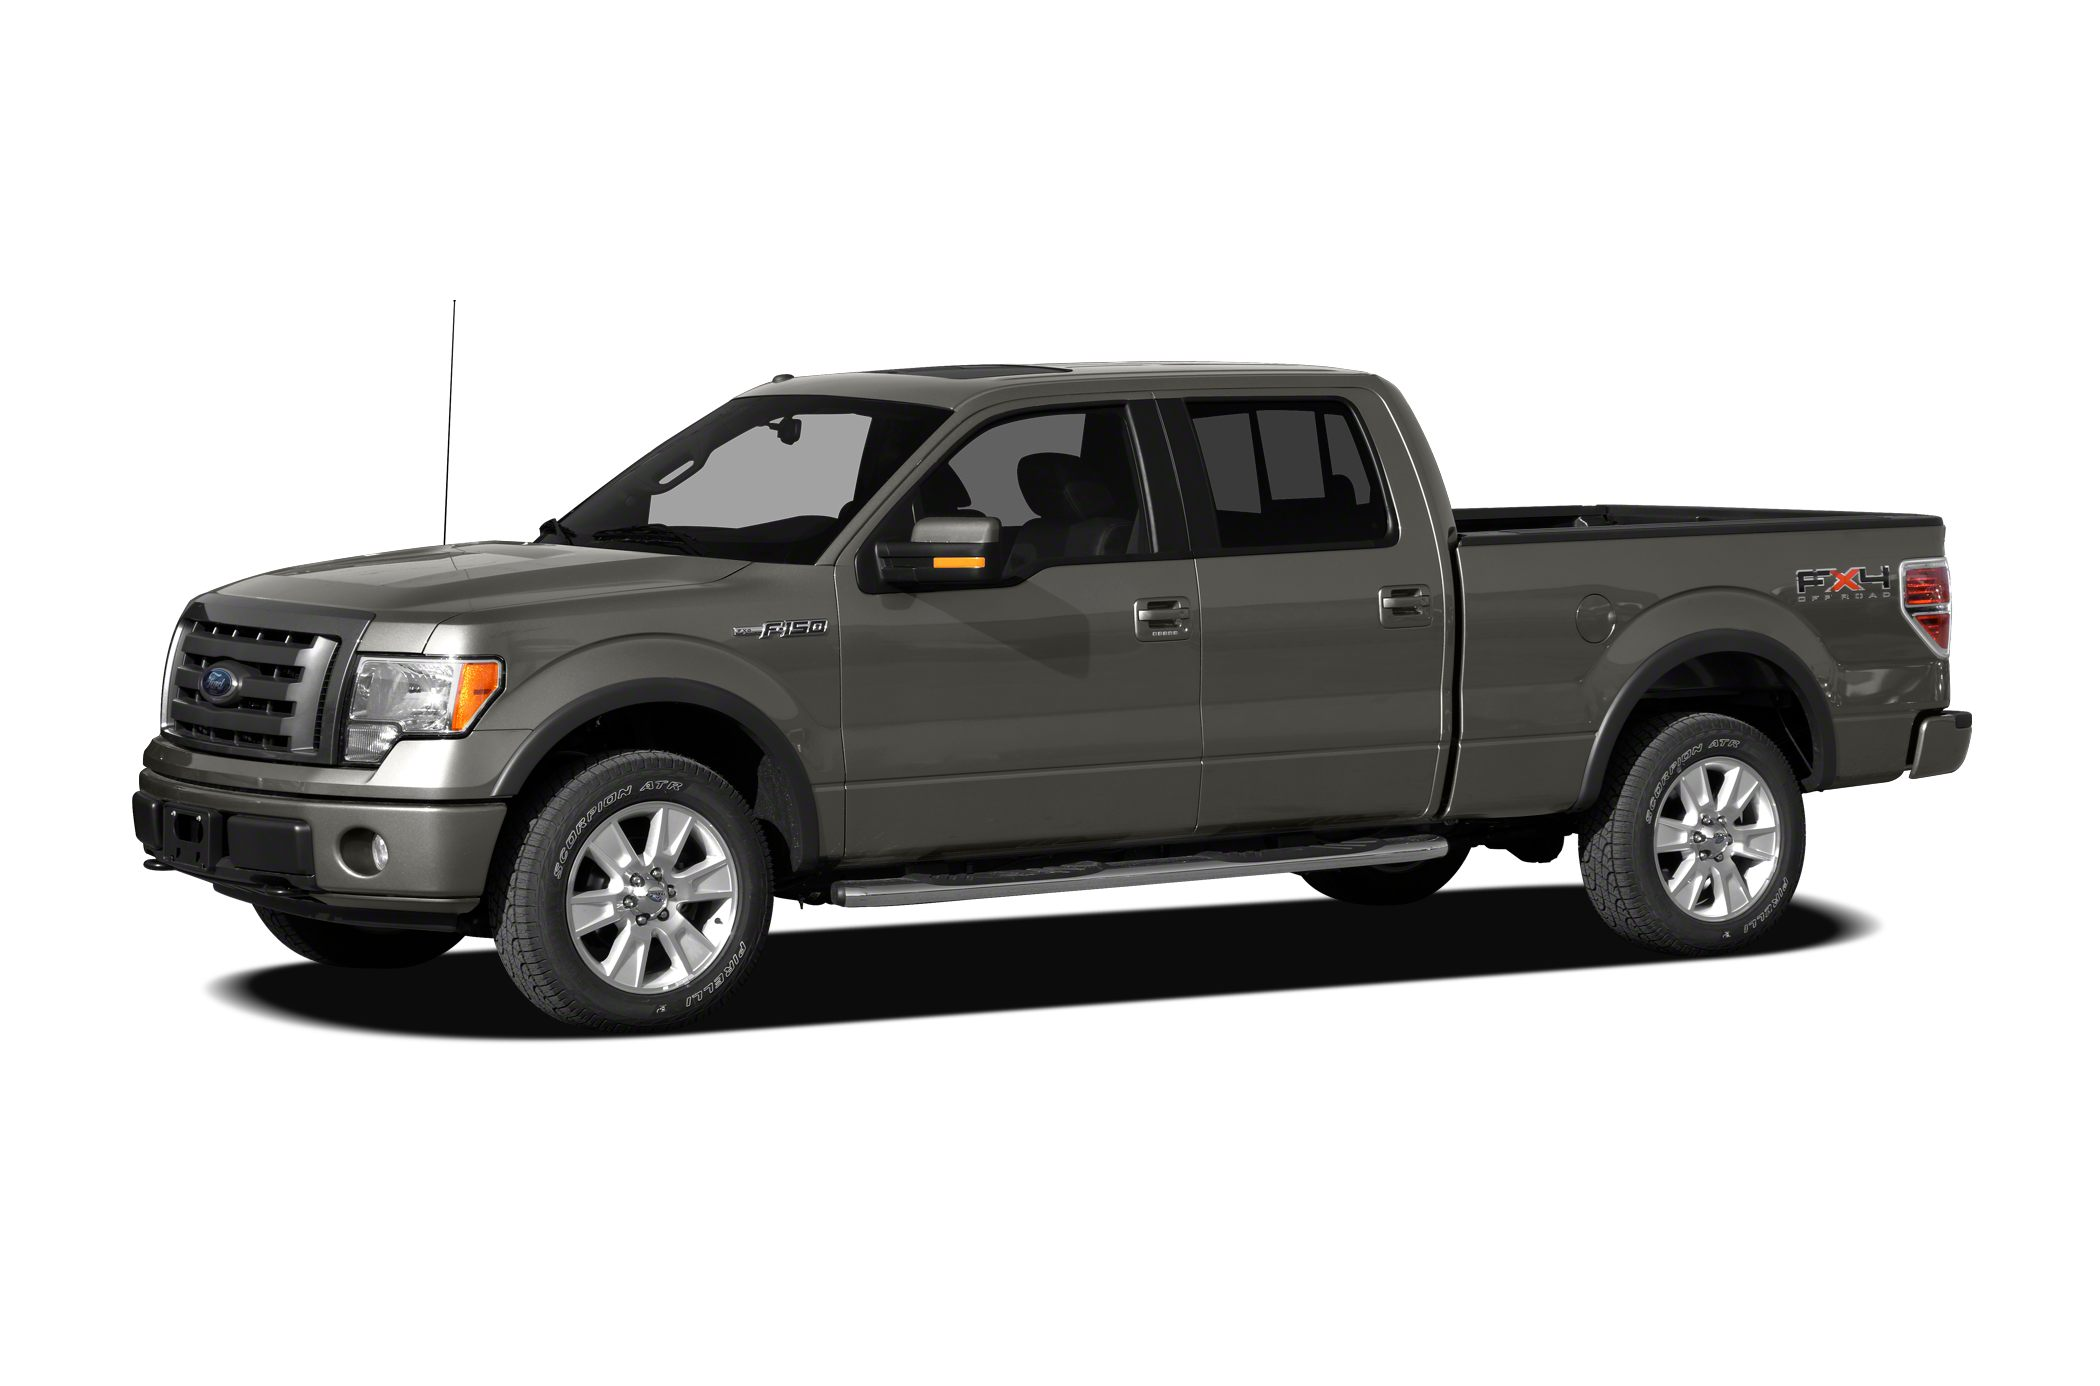 2011 Ford F150 Lariat Limited Crew Cab Pickup for sale in Houston for $33,991 with 43,455 miles.